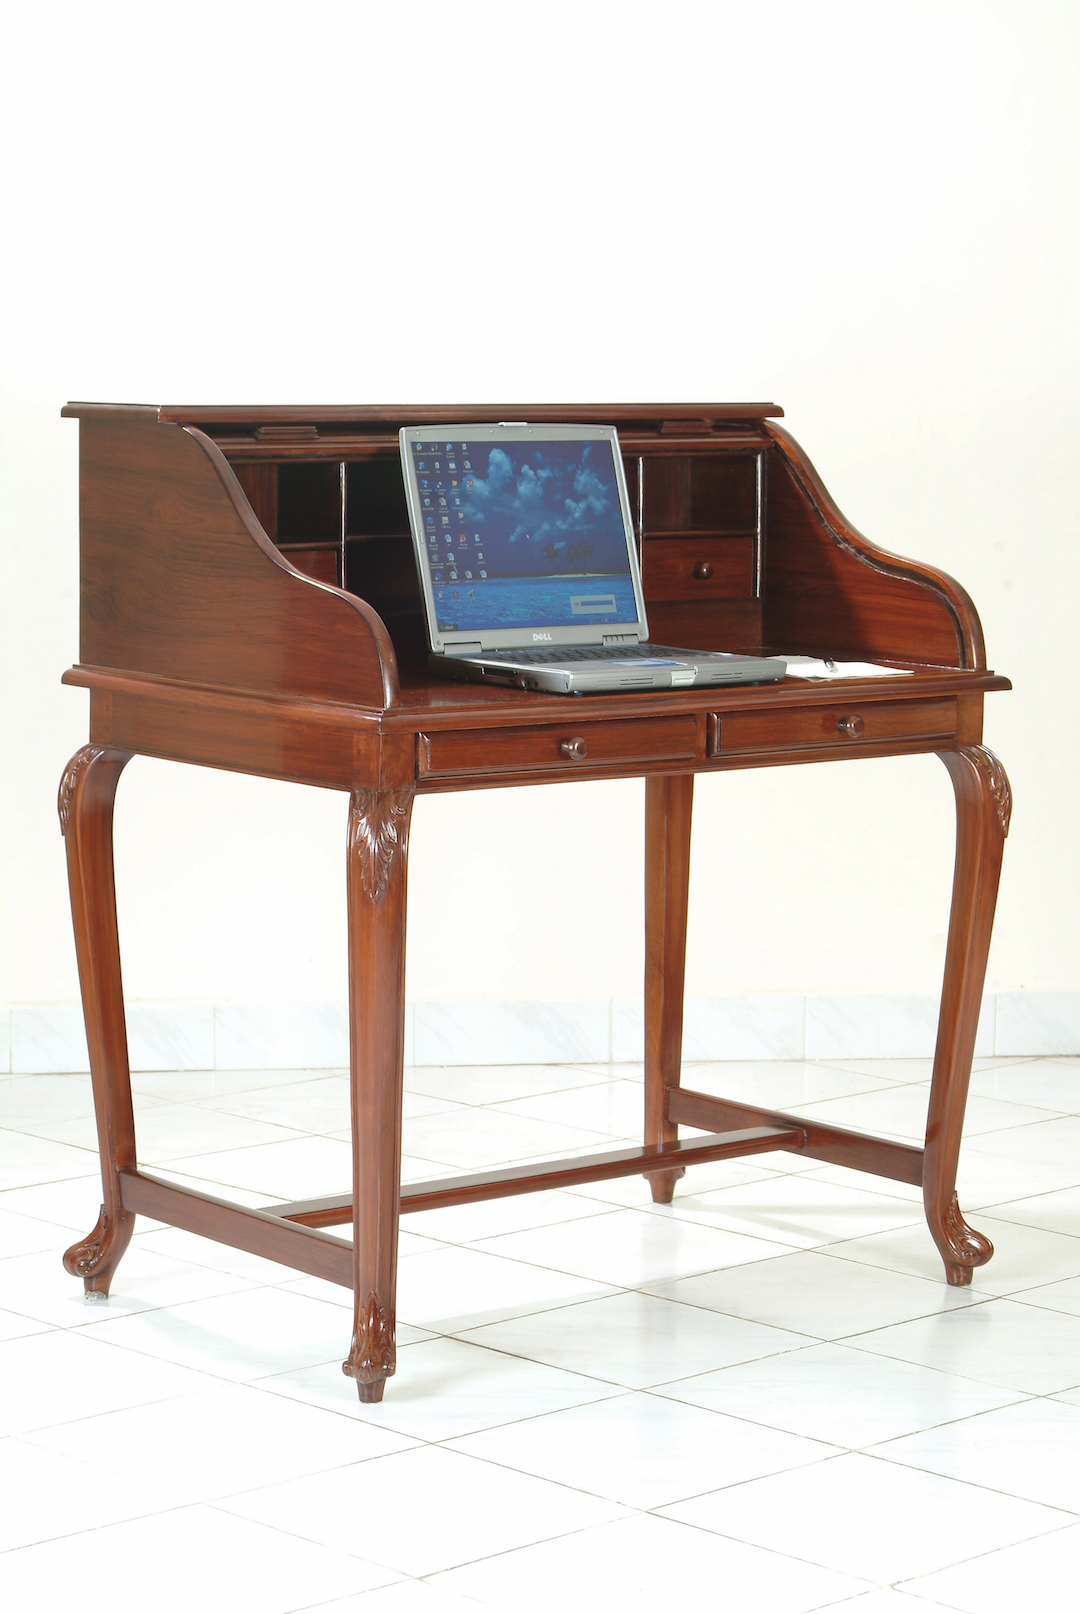 roll top writing desk Specially designed beautiful red oak rolltop desks, racks and presentation furniture to house audio and lighting mixing consoles, video, touch screens, system.